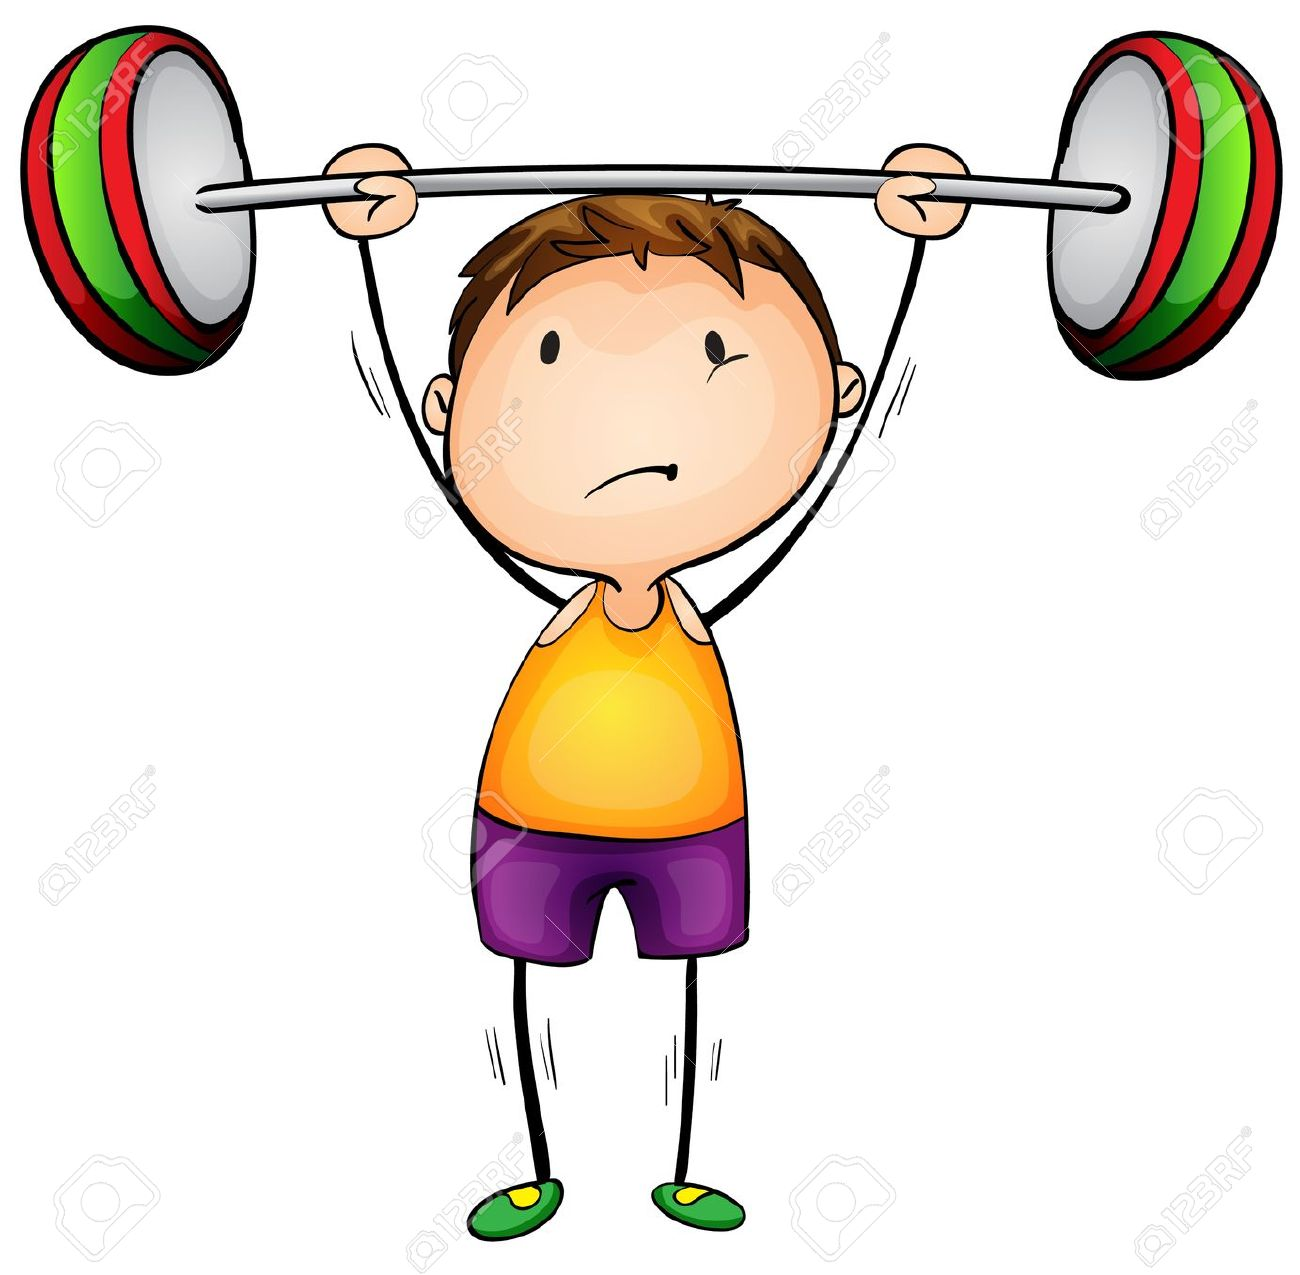 Cute girl lifting weights clipart.